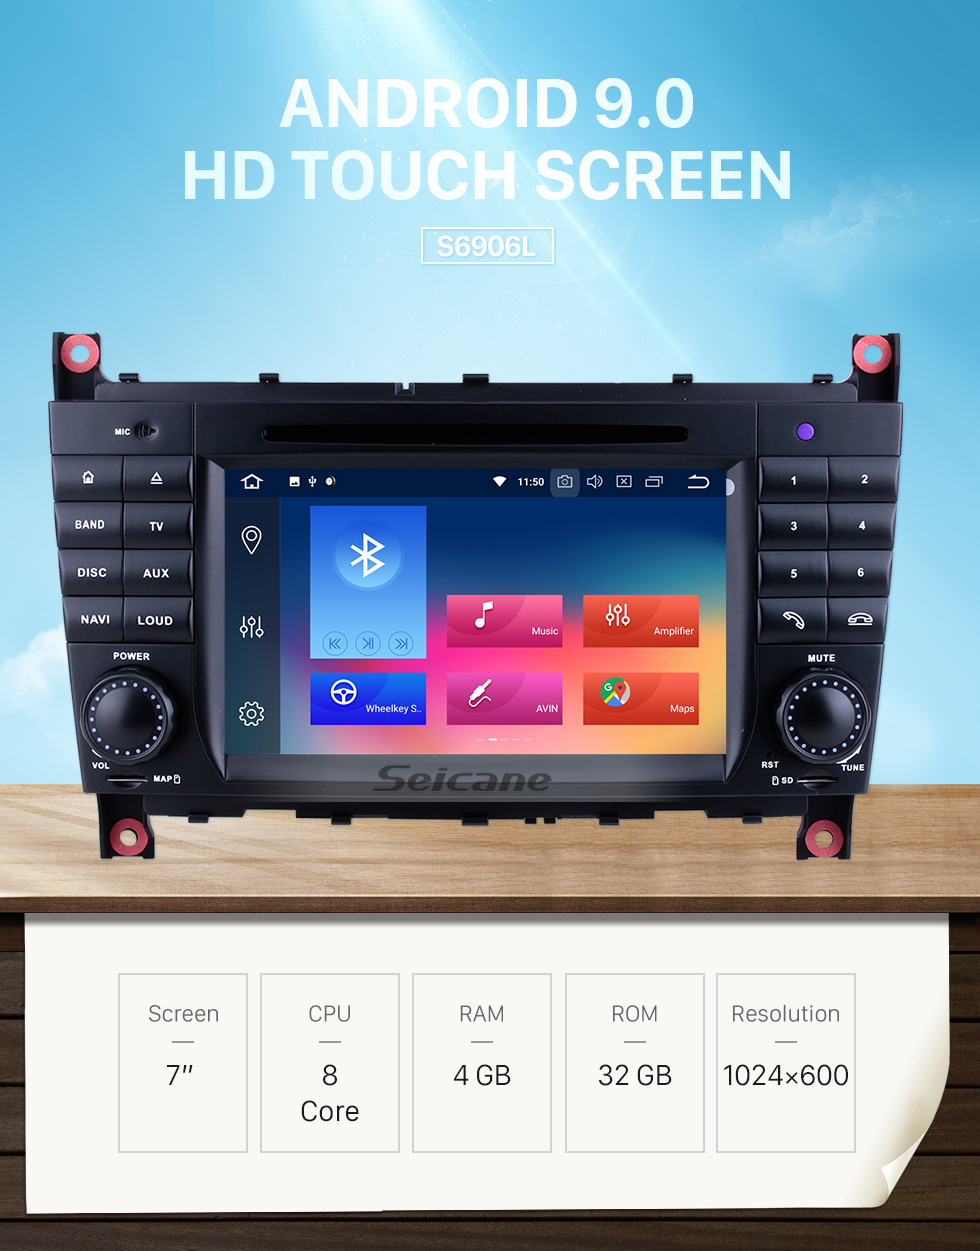 Seicane In Dash Radio DVD Player Android 9.0 7 Inch HD Touchscreen For 2005 2006 2007 Mercedes-Benz G Class W467 G550 G500 G400 G320 G270 G55 GPS Navigation Bluetooth Music WIFI Support OBD2 DVR AUX Rearview Camera Steering Wheel Control